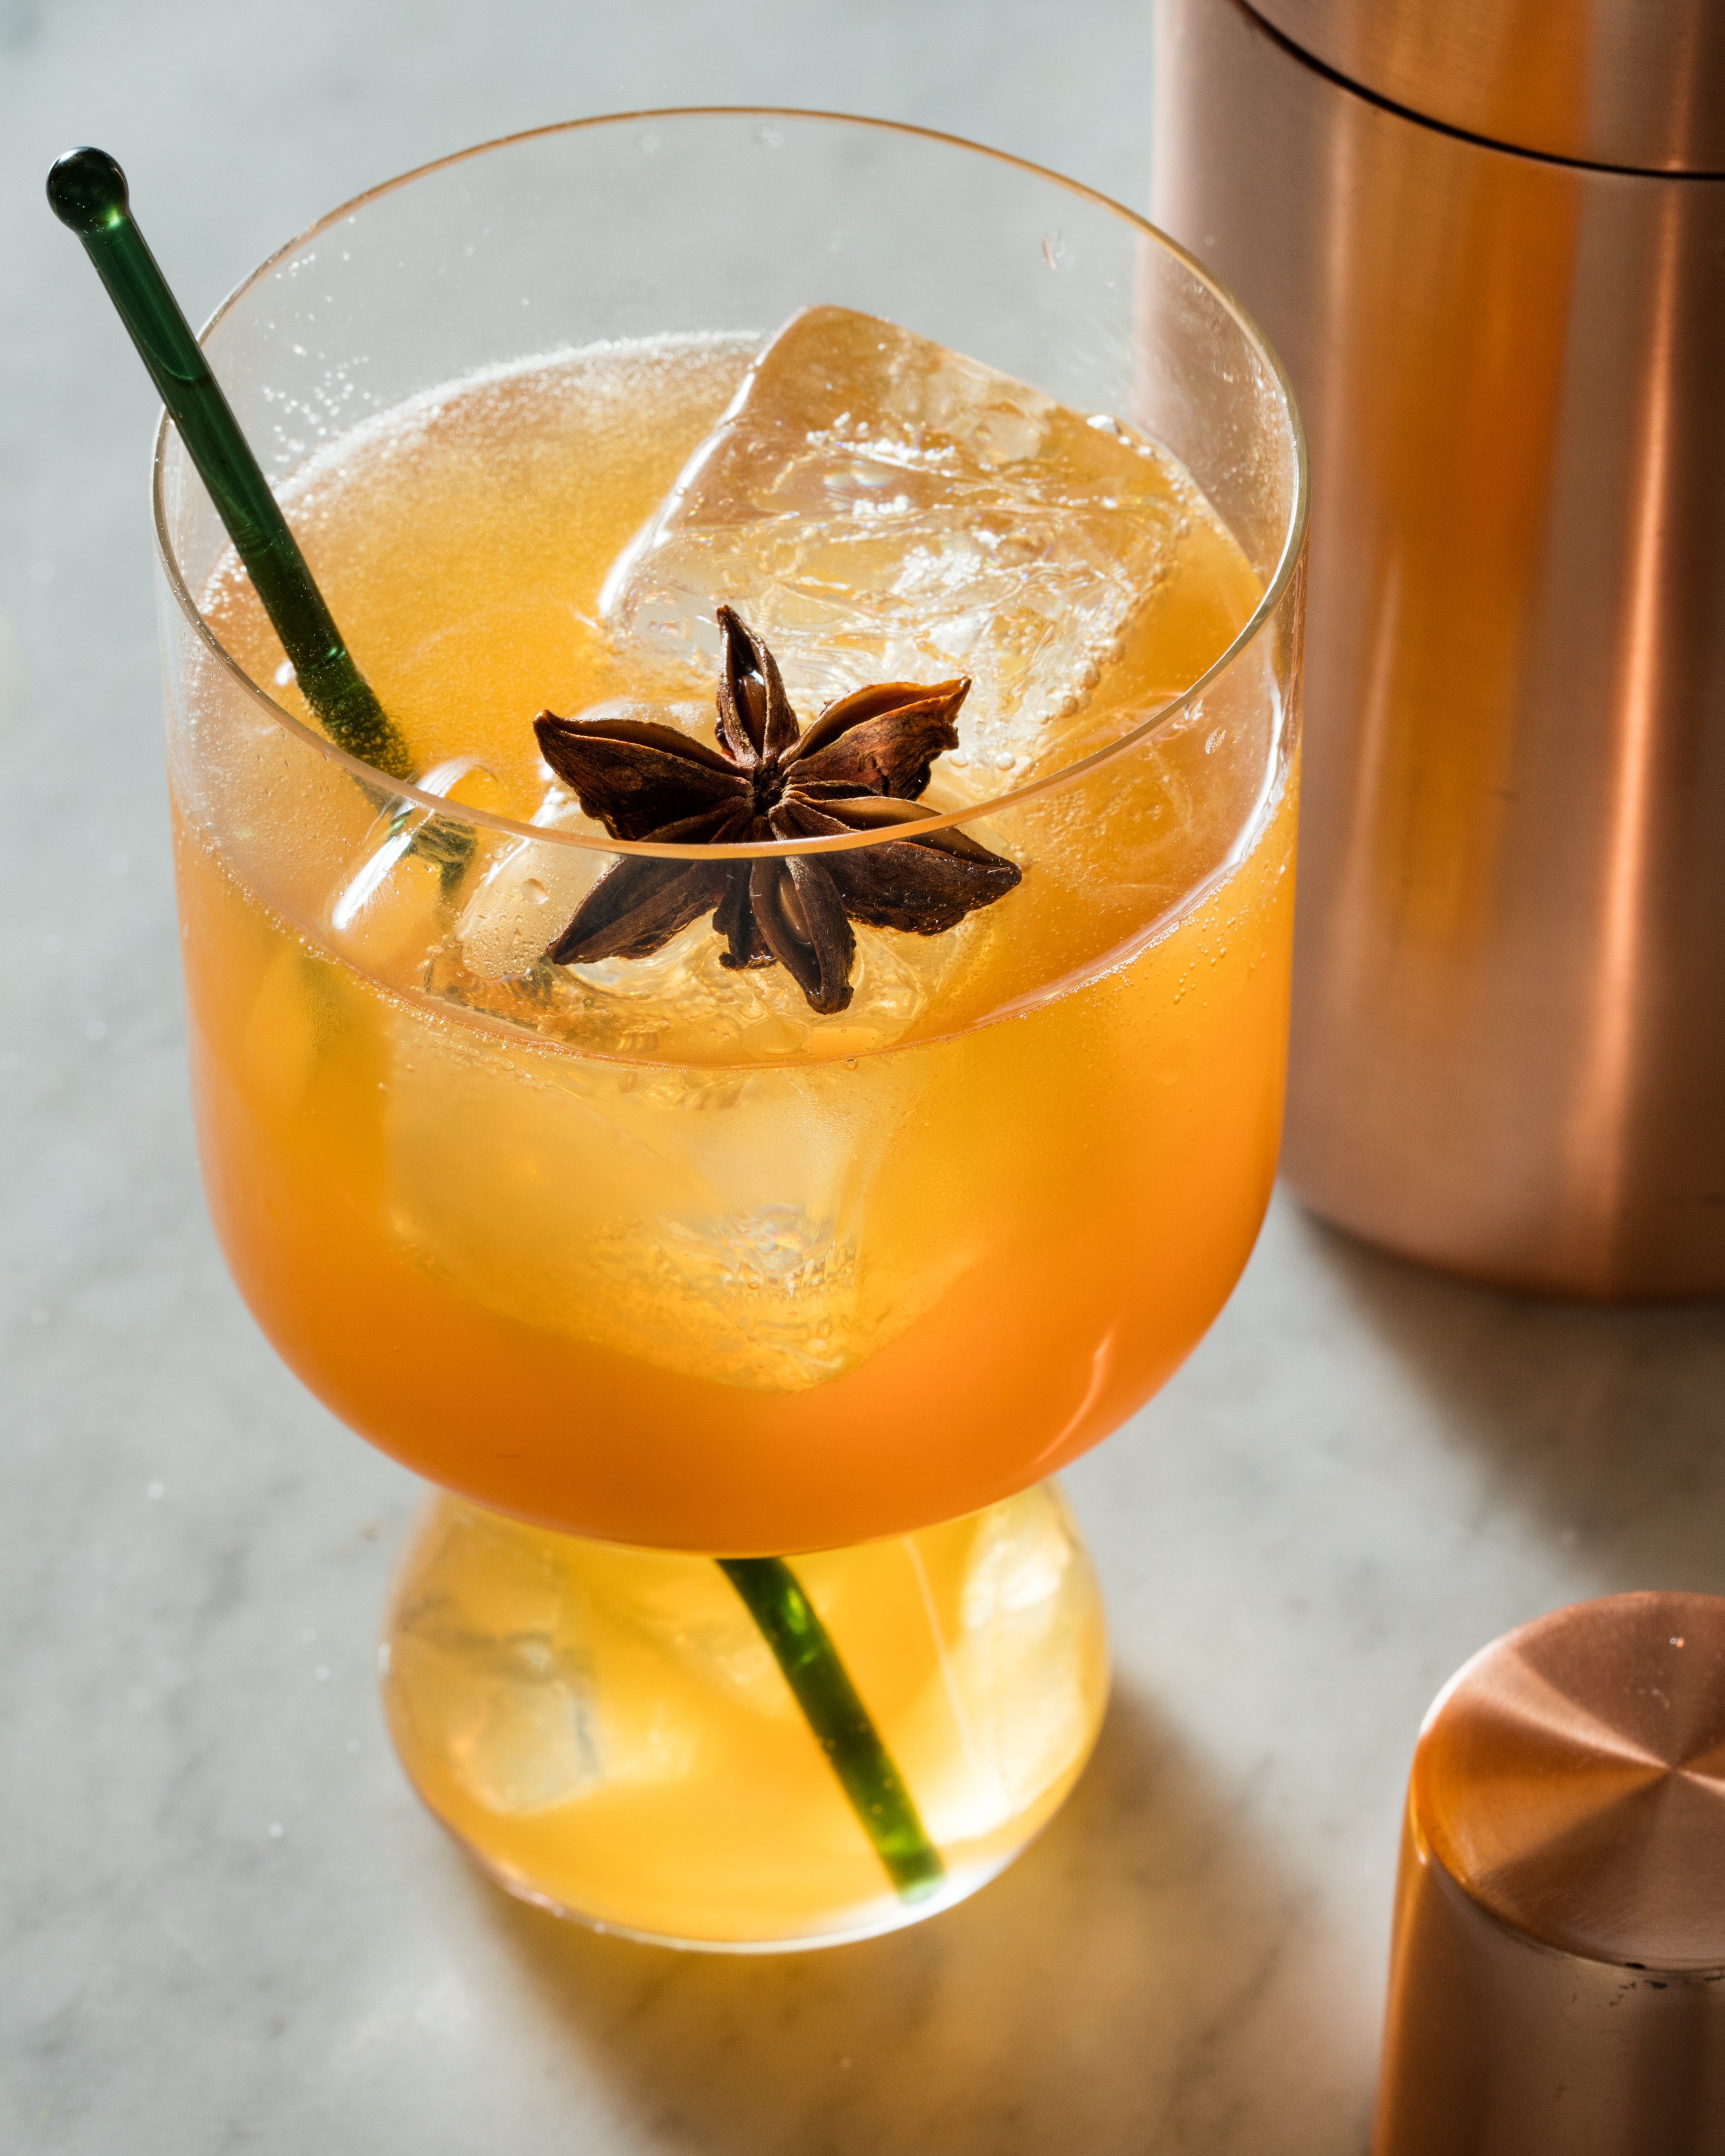 Thanksgiving Drinks With Vodka: Pumpkin Pie Vodka Cocktails = All The Yes